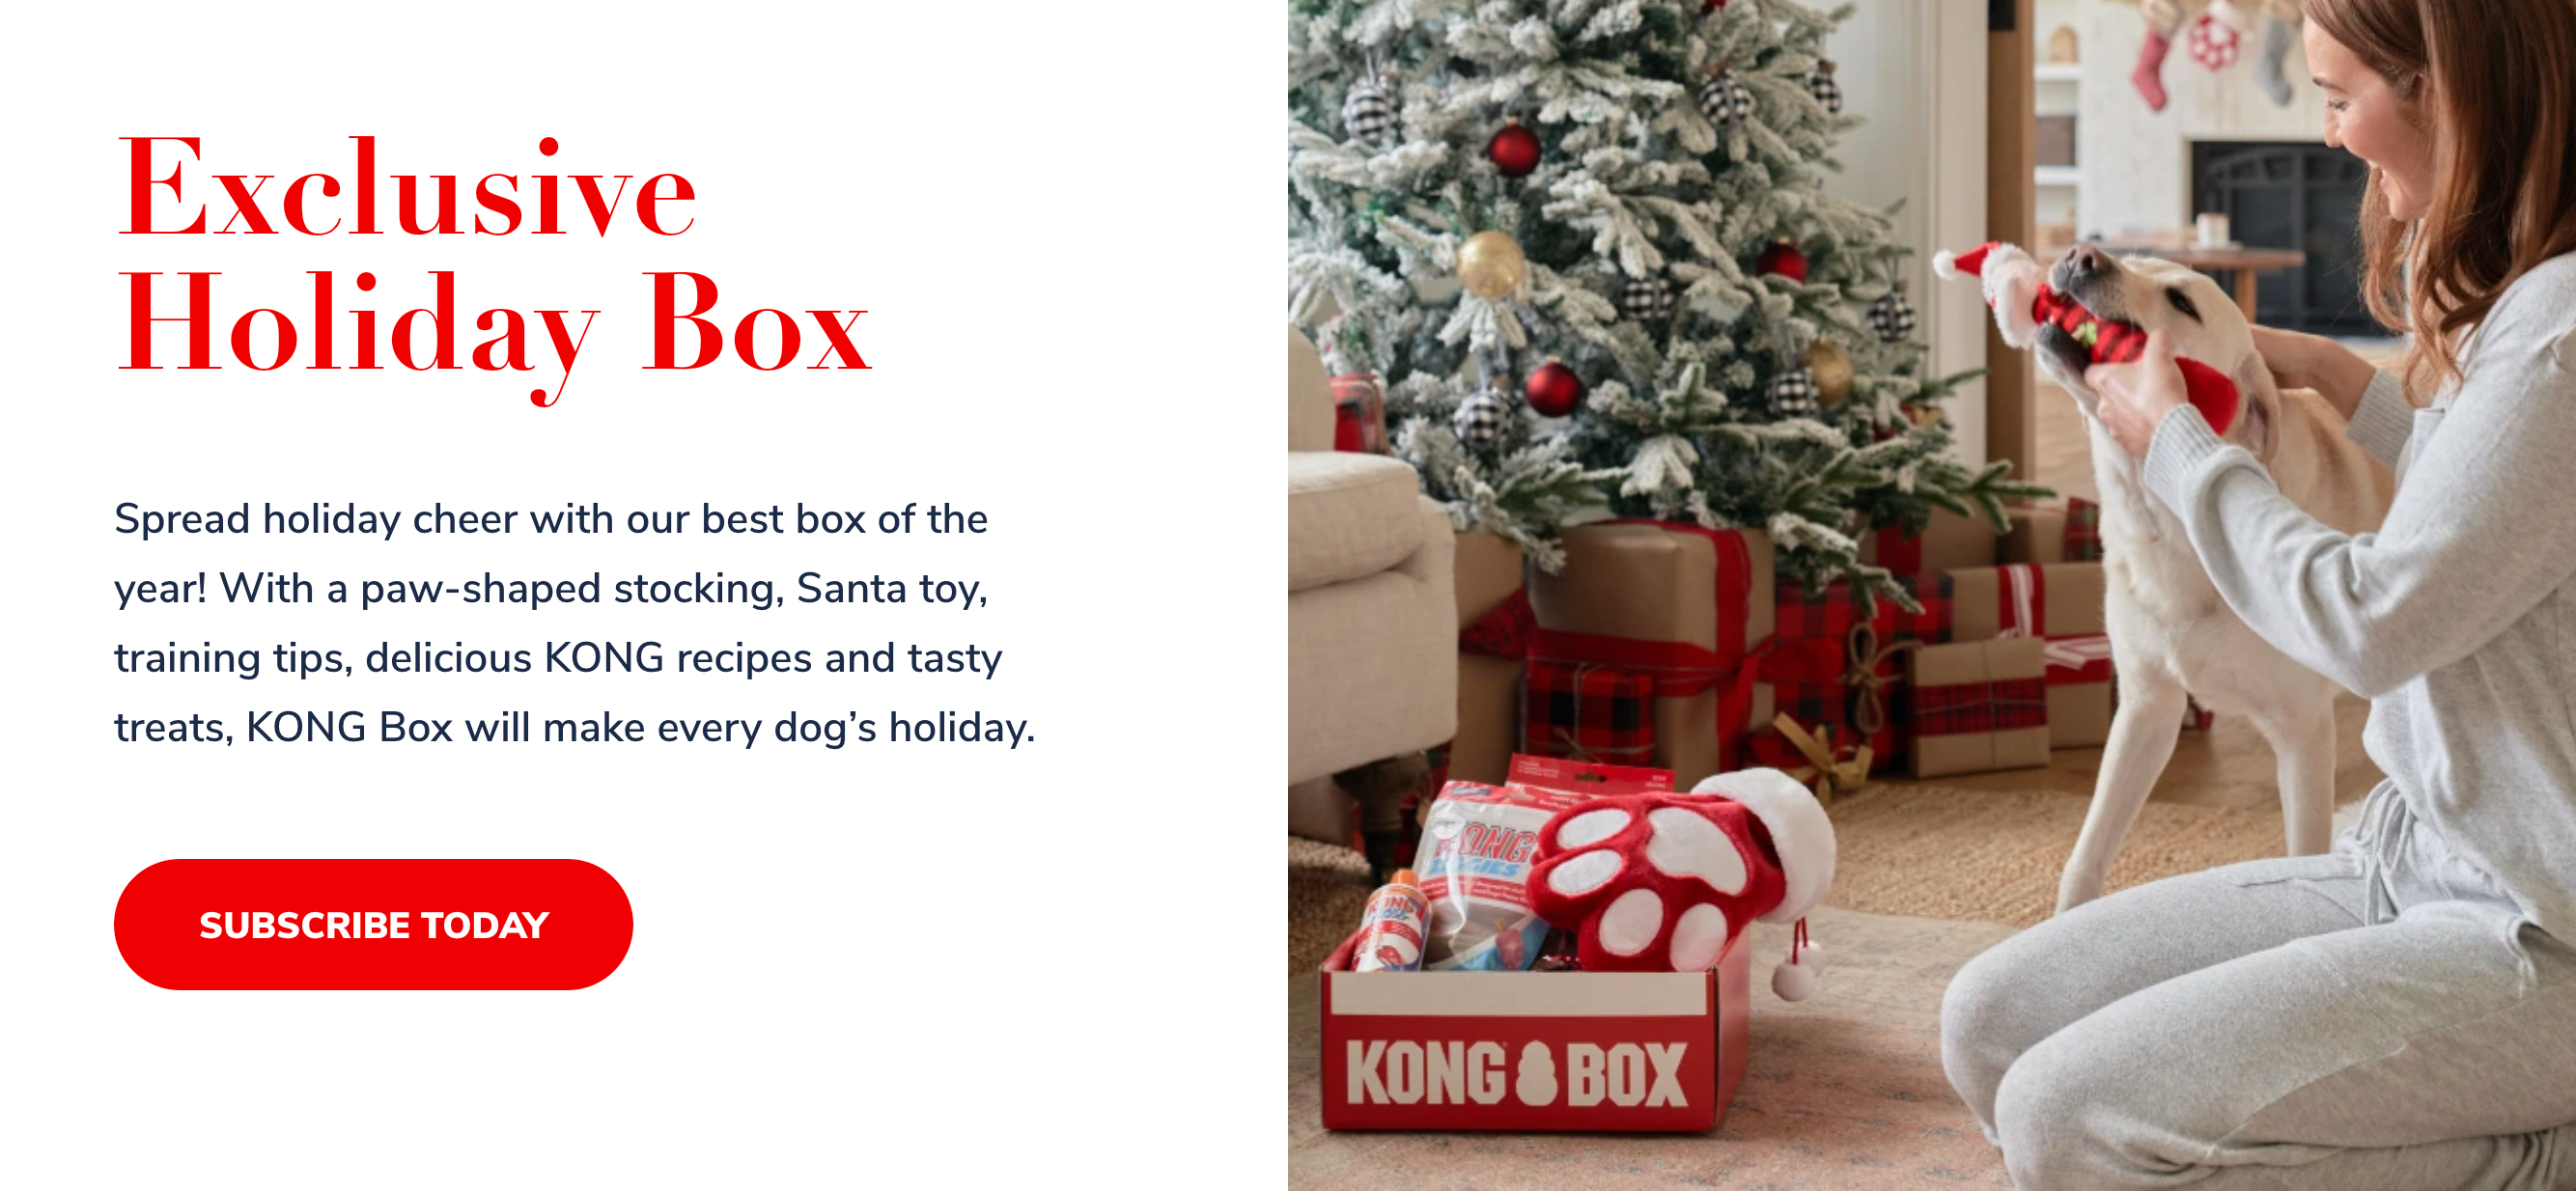 KONG Box case study example of great customer experience on ecommerce | Pattern Blog